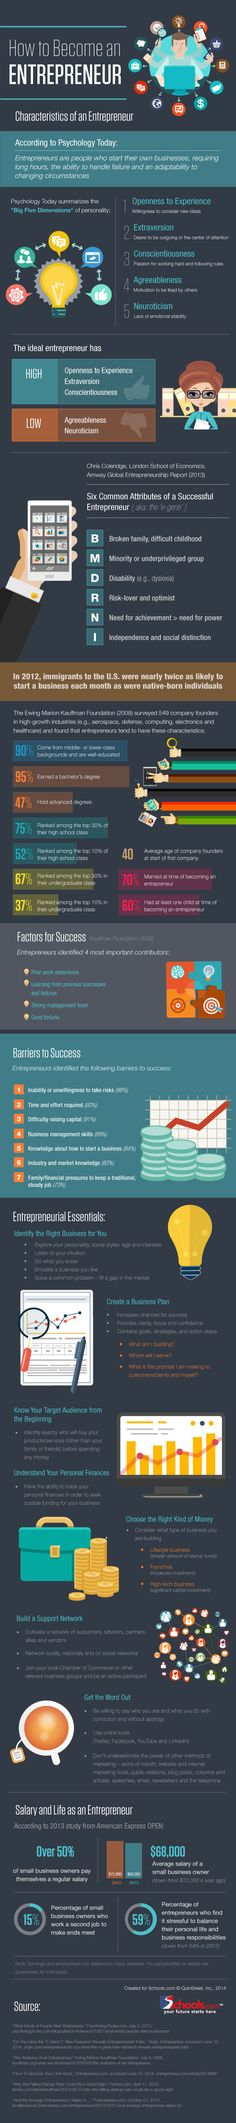 What Great #Entrepreneurs #infographic